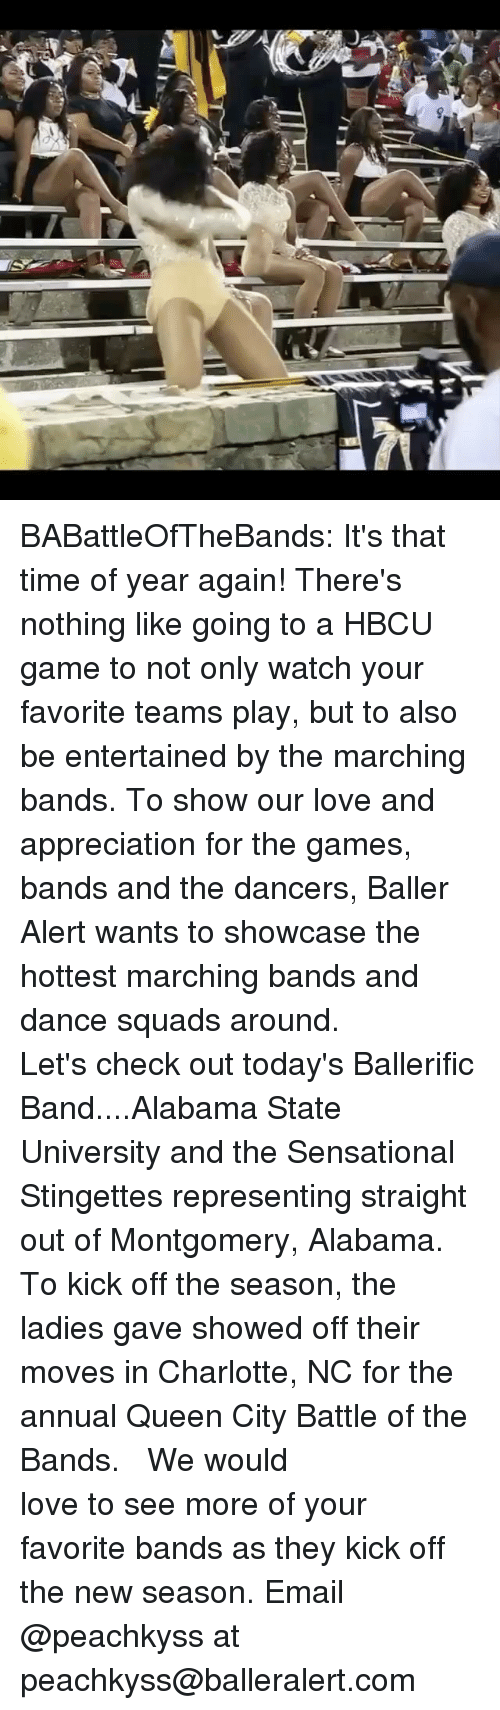 annuale: BABattleOfTheBands: It's that time of year again! There's nothing like going to a HBCU game to not only watch your favorite teams play, but to also be entertained by the marching bands. To show our love and appreciation for the games, bands and the dancers, Baller Alert wants to showcase the hottest marching bands and dance squads around. ⠀⠀⠀ ⠀⠀⠀⠀⠀⠀⠀ Let's check out today's Ballerific Band....Alabama State University and the Sensational Stingettes representing straight out of Montgomery, Alabama. To kick off the season, the ladies gave showed off their moves in Charlotte, NC for the annual Queen City Battle of the Bands. ⠀⠀⠀⠀⠀⠀⠀ ⠀⠀⠀⠀⠀⠀⠀ We would love to see more of your favorite bands as they kick off the new season. Email @peachkyss at peachkyss@balleralert.com